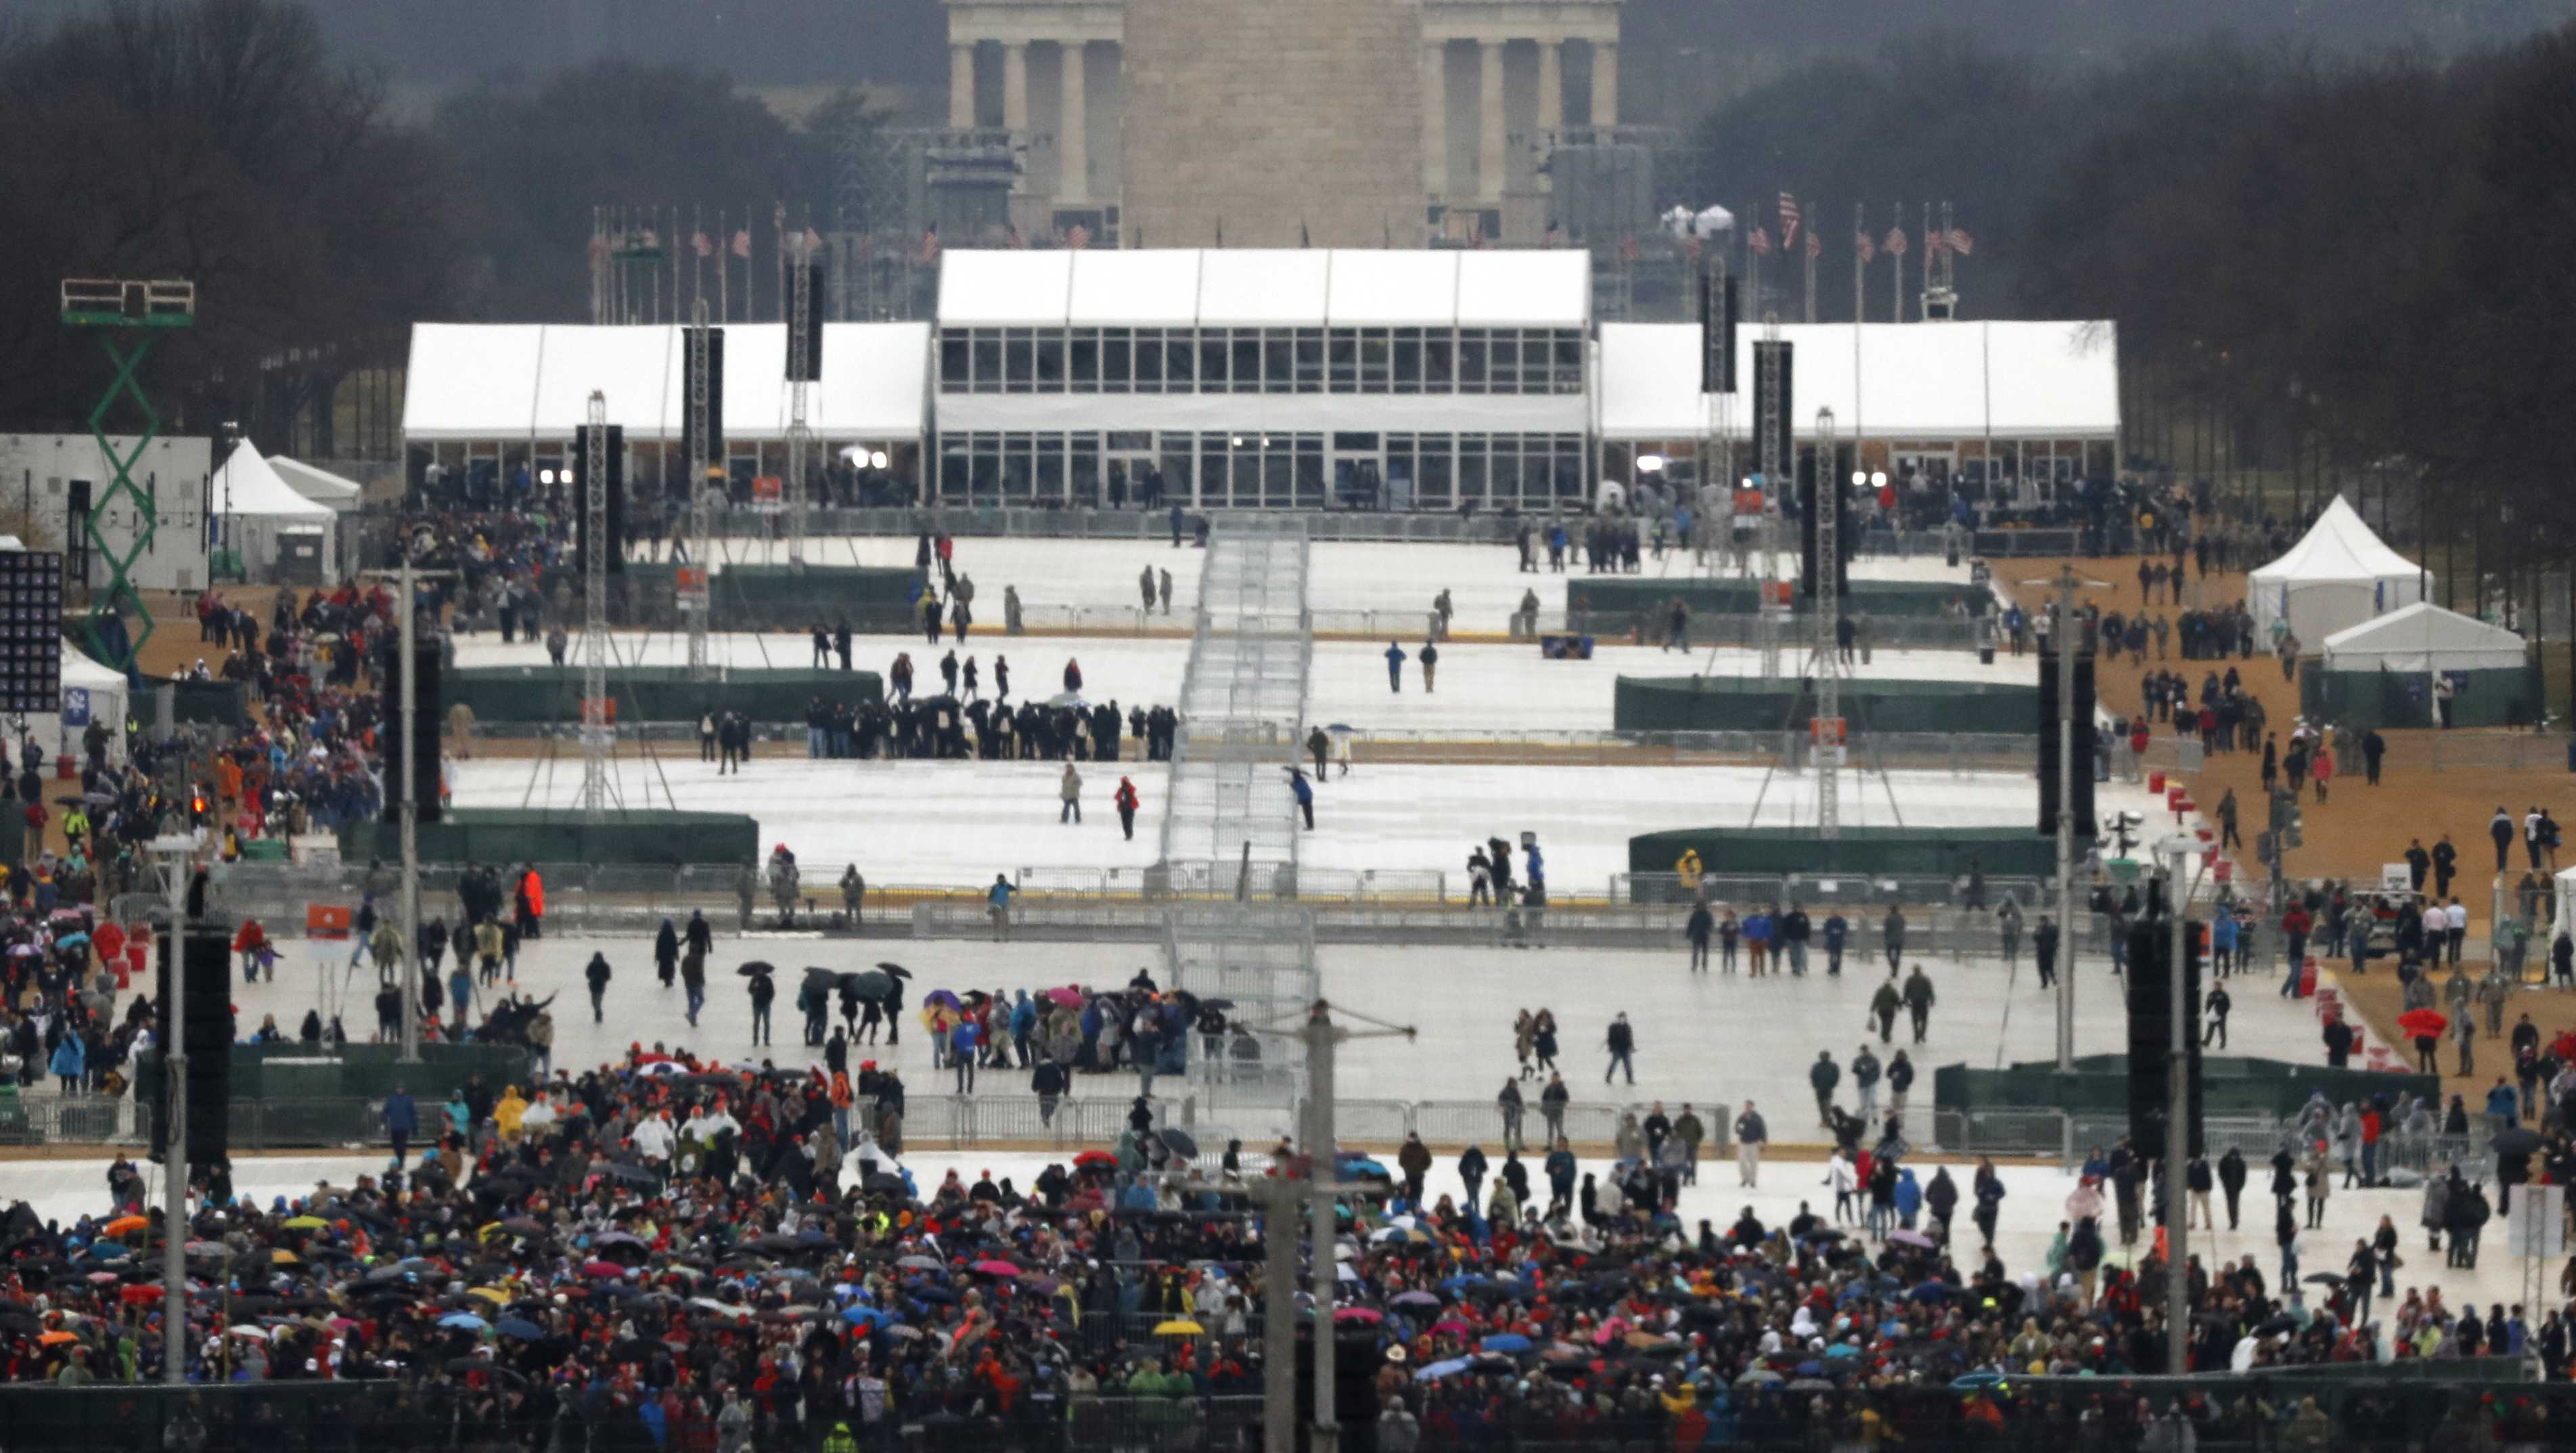 The crowd fills in at the National Mall for the inauguration ceremony of Donald Trump on Friday, Jan. 20, 2017.